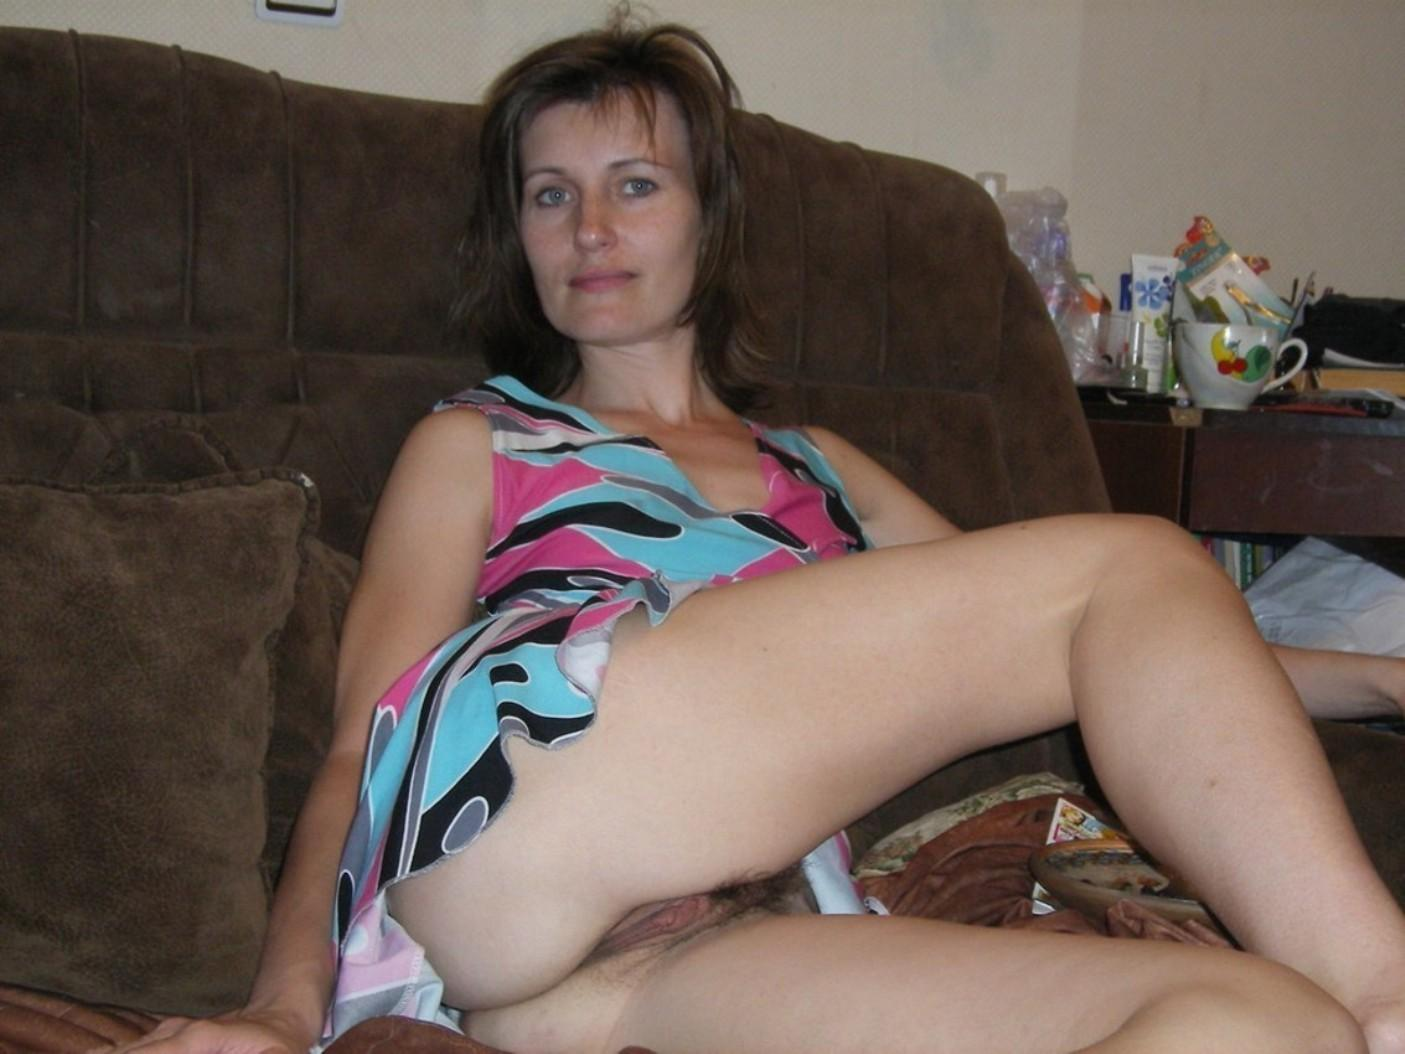 Beautiful wife delights in showing off her bush twat. Russian MILF stripping down naked on the couch and showing hairy pussy